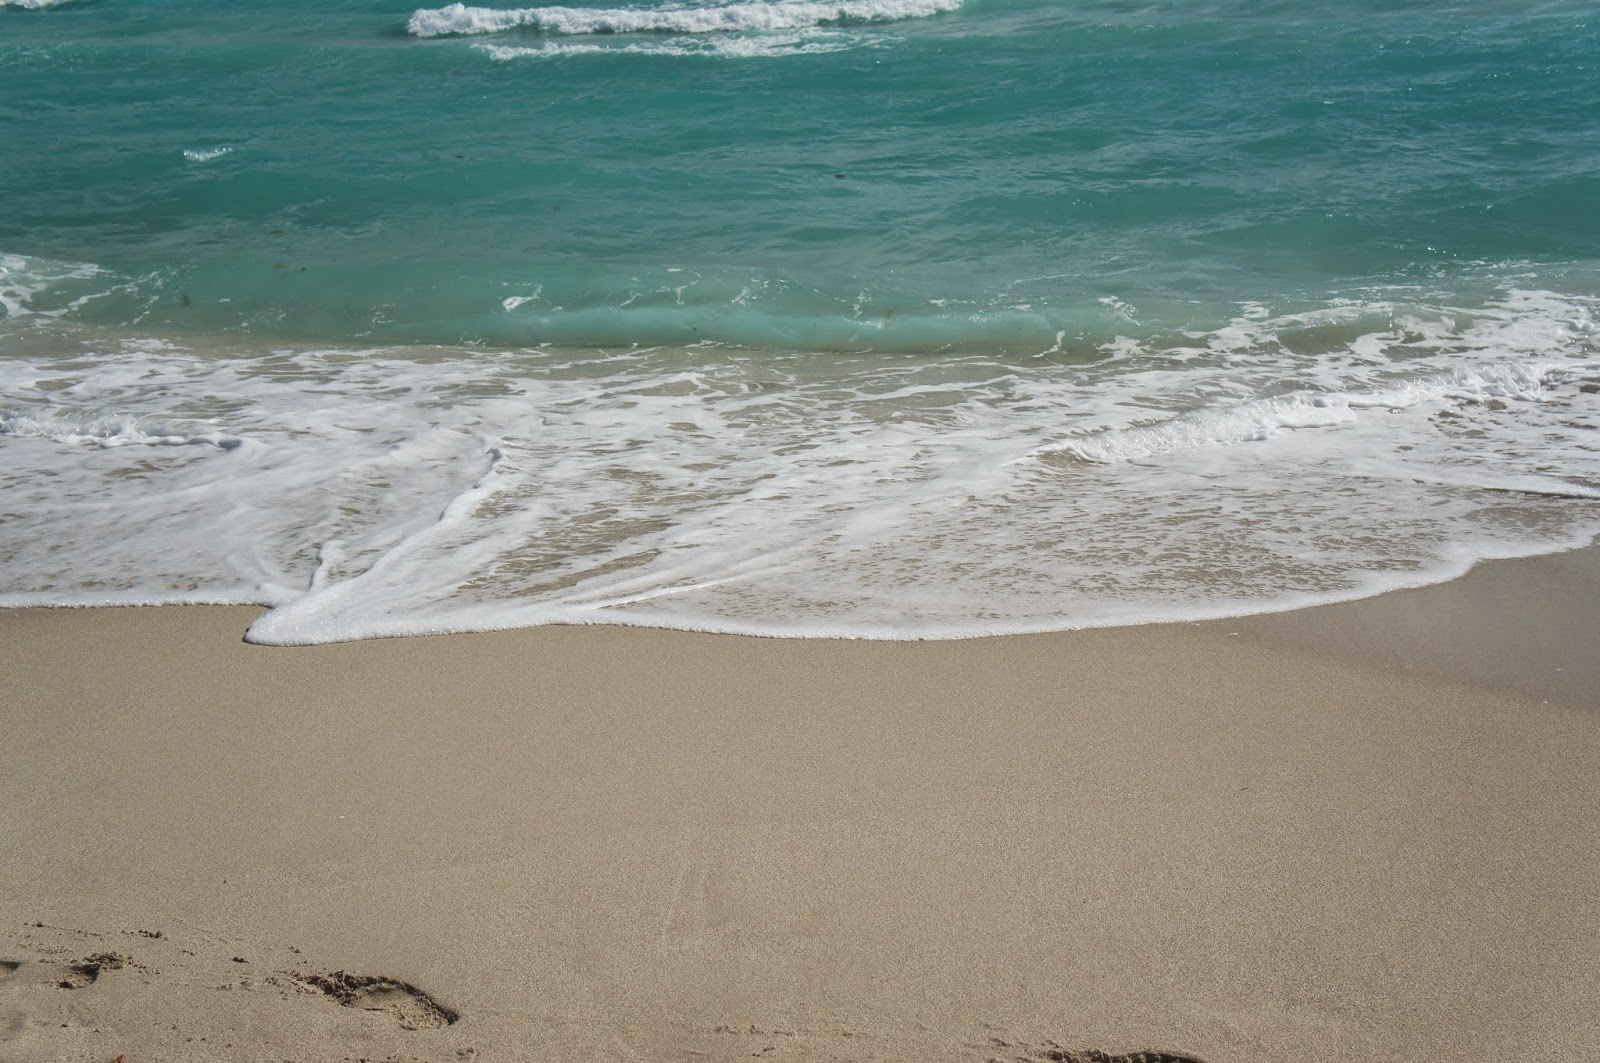 royalty-free picture of the beach sand